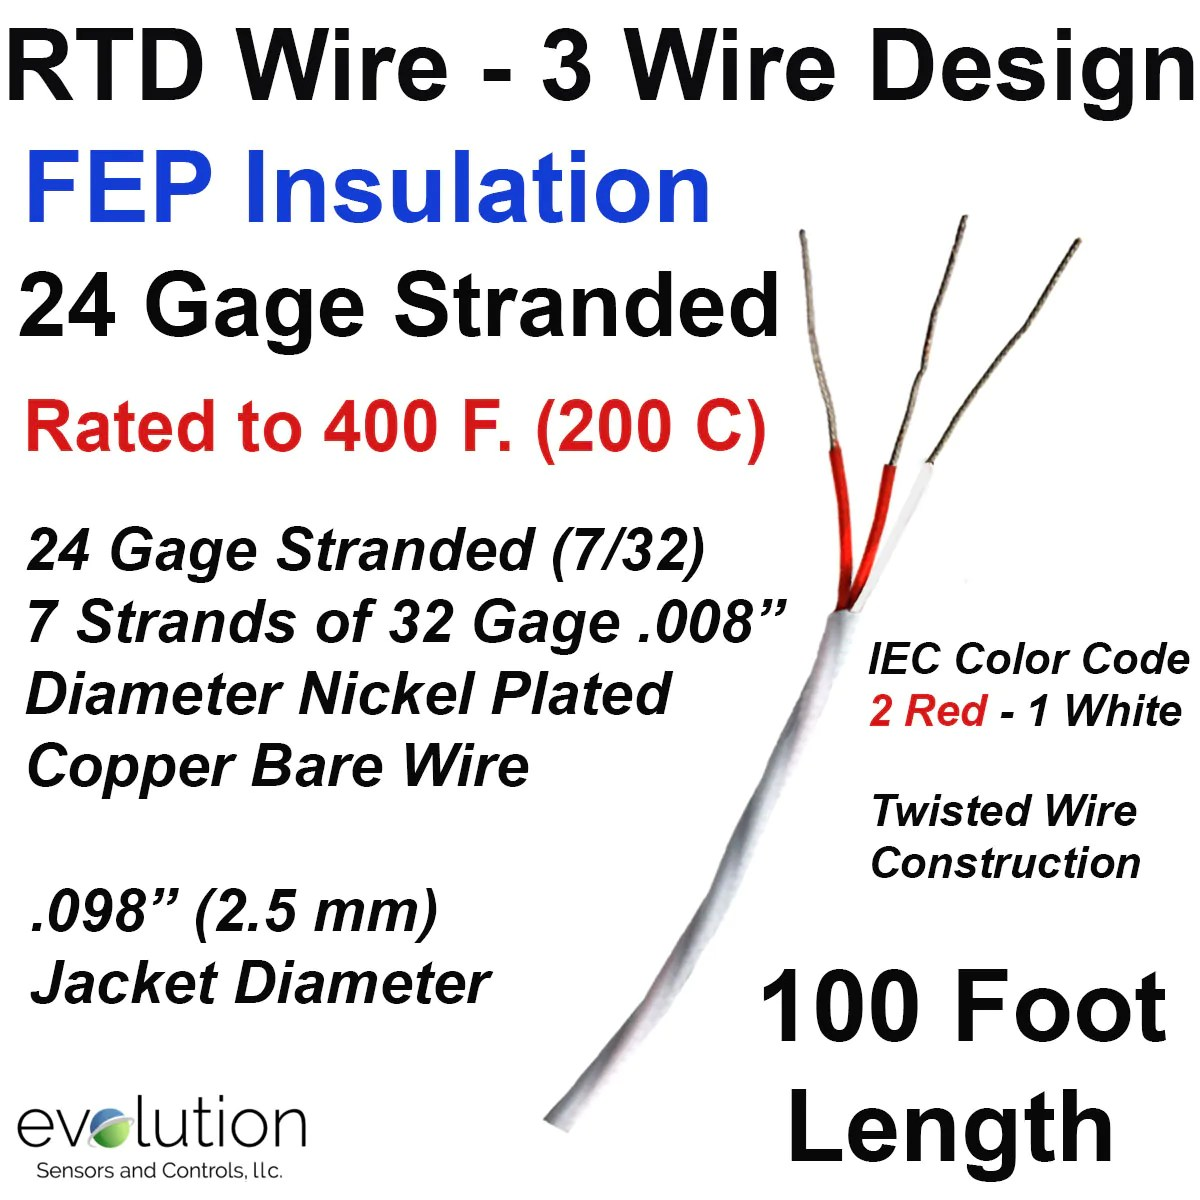 medium resolution of rtd wire 3 wire design 24 gage stranded with fep insulation 100 2 wire rtd color